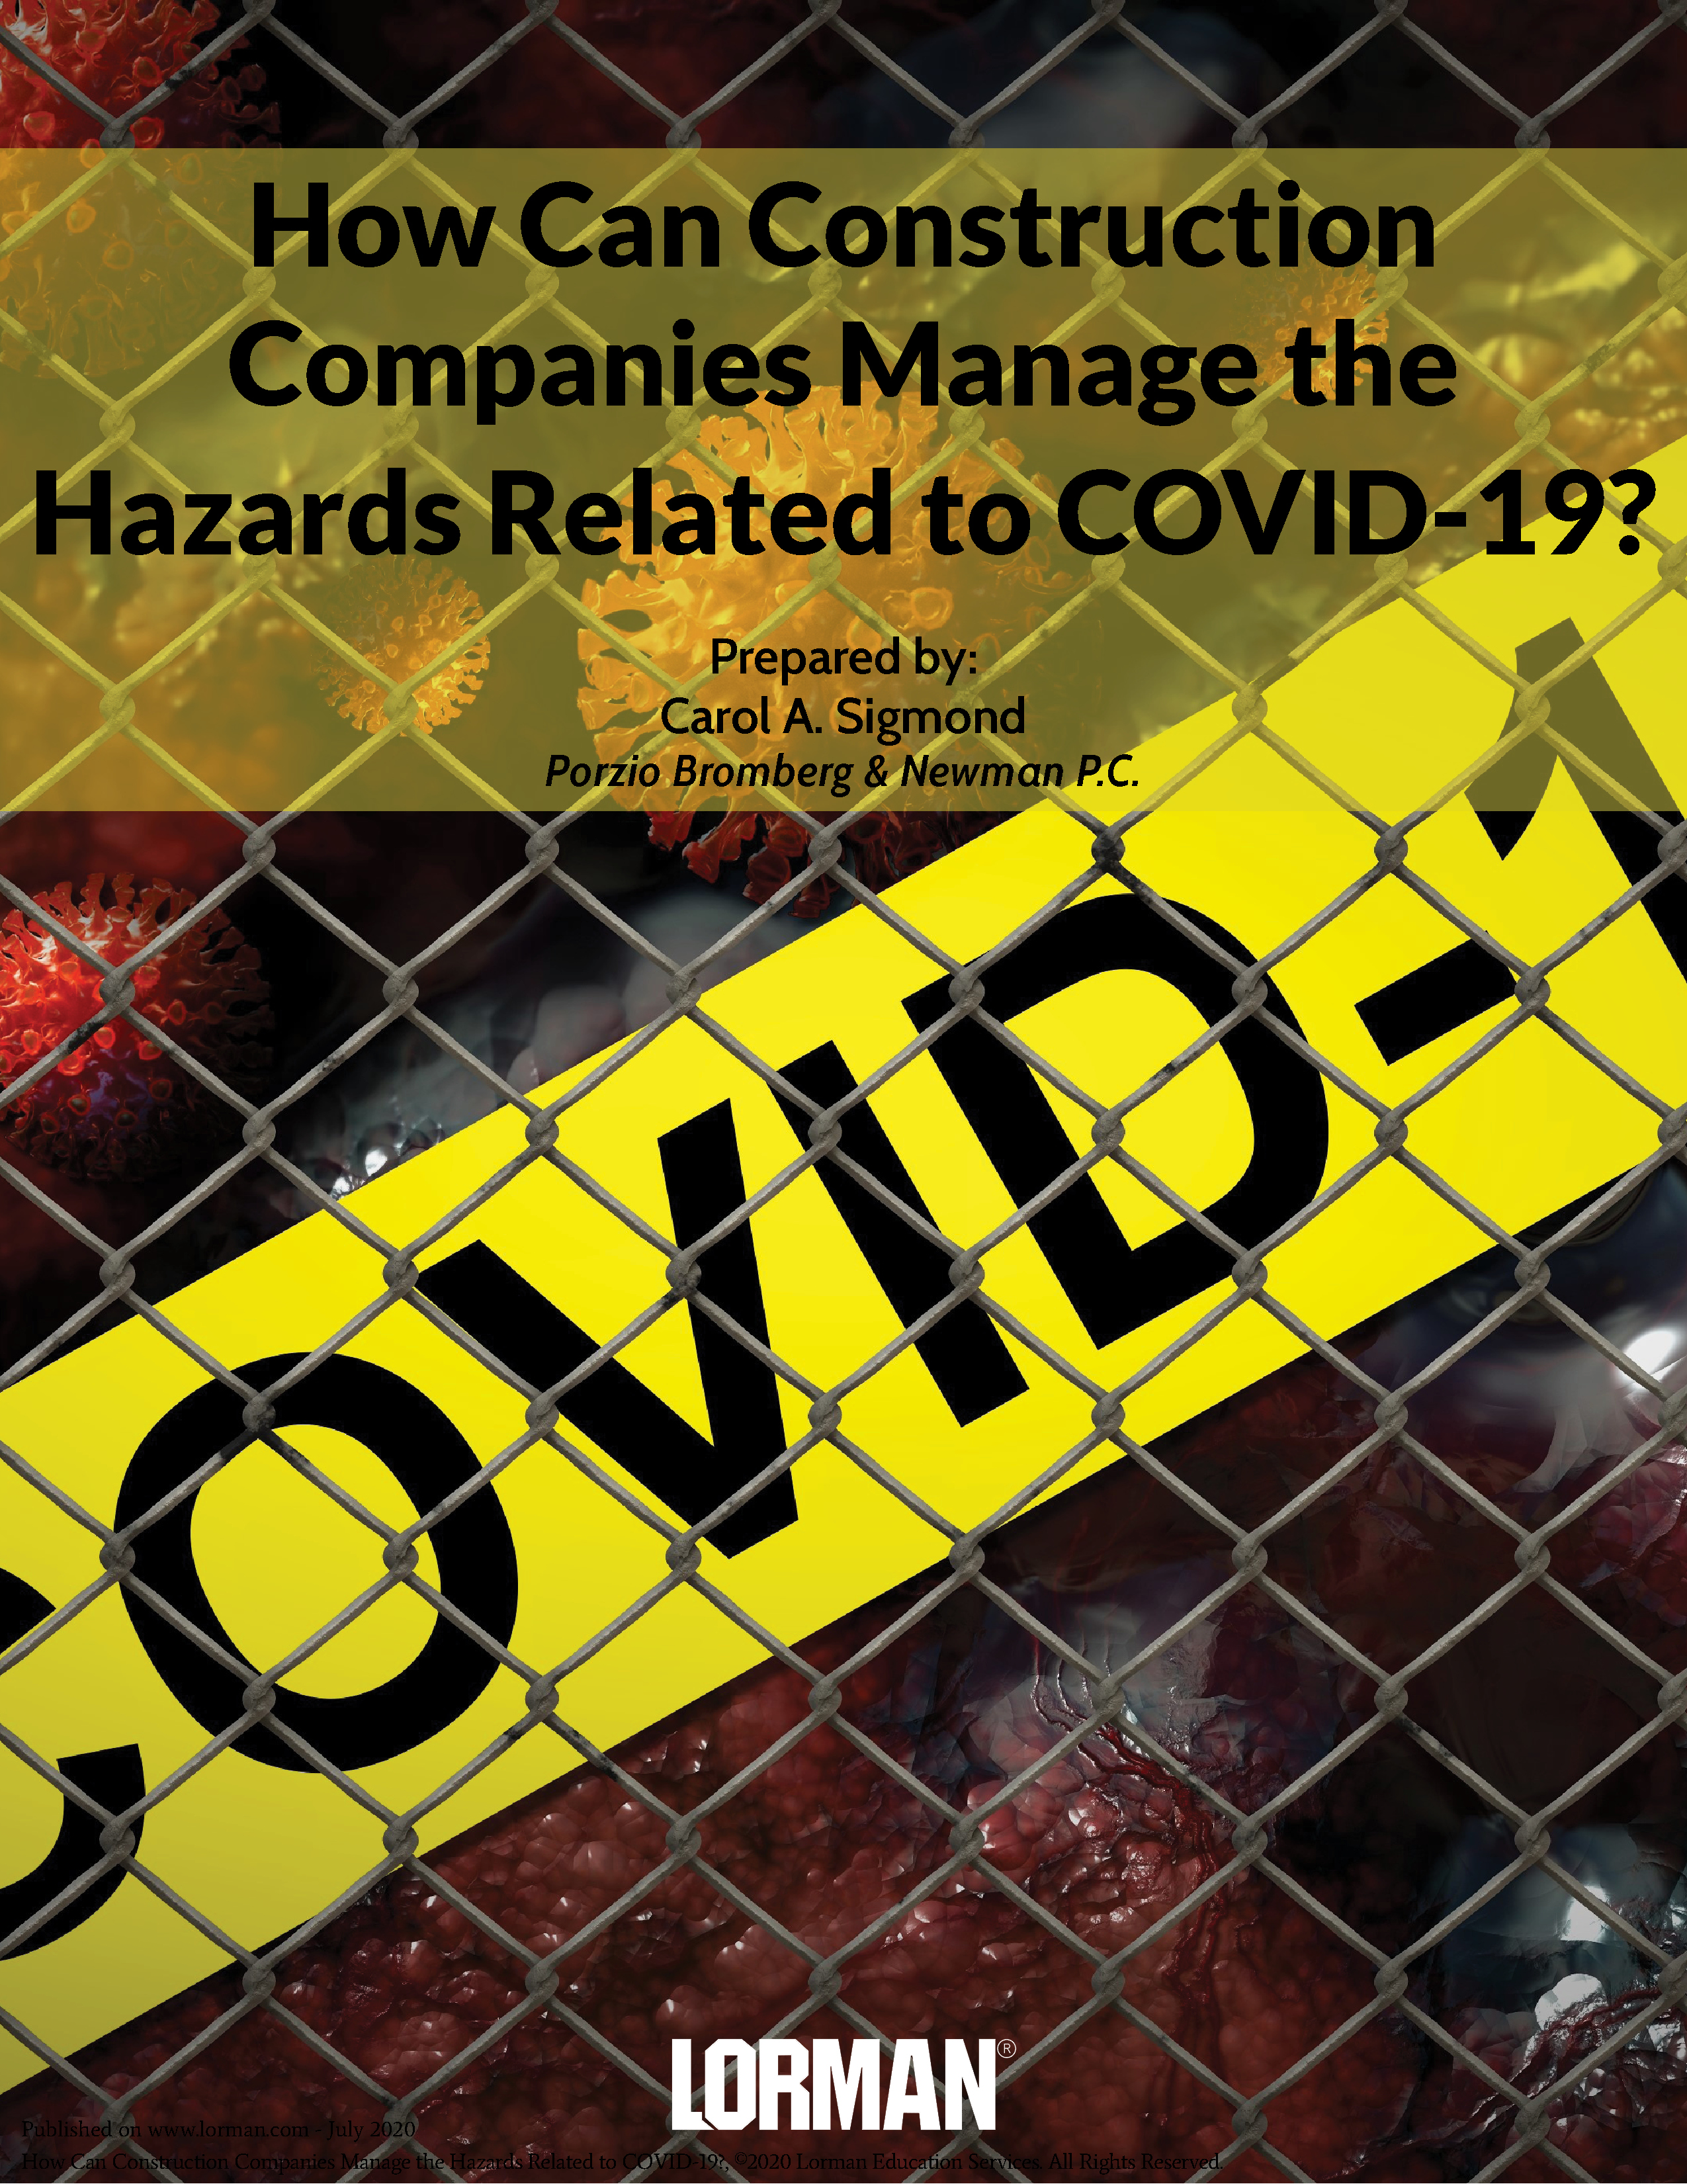 How Can Construction Companies Manage the Hazards Related to COVID-19?